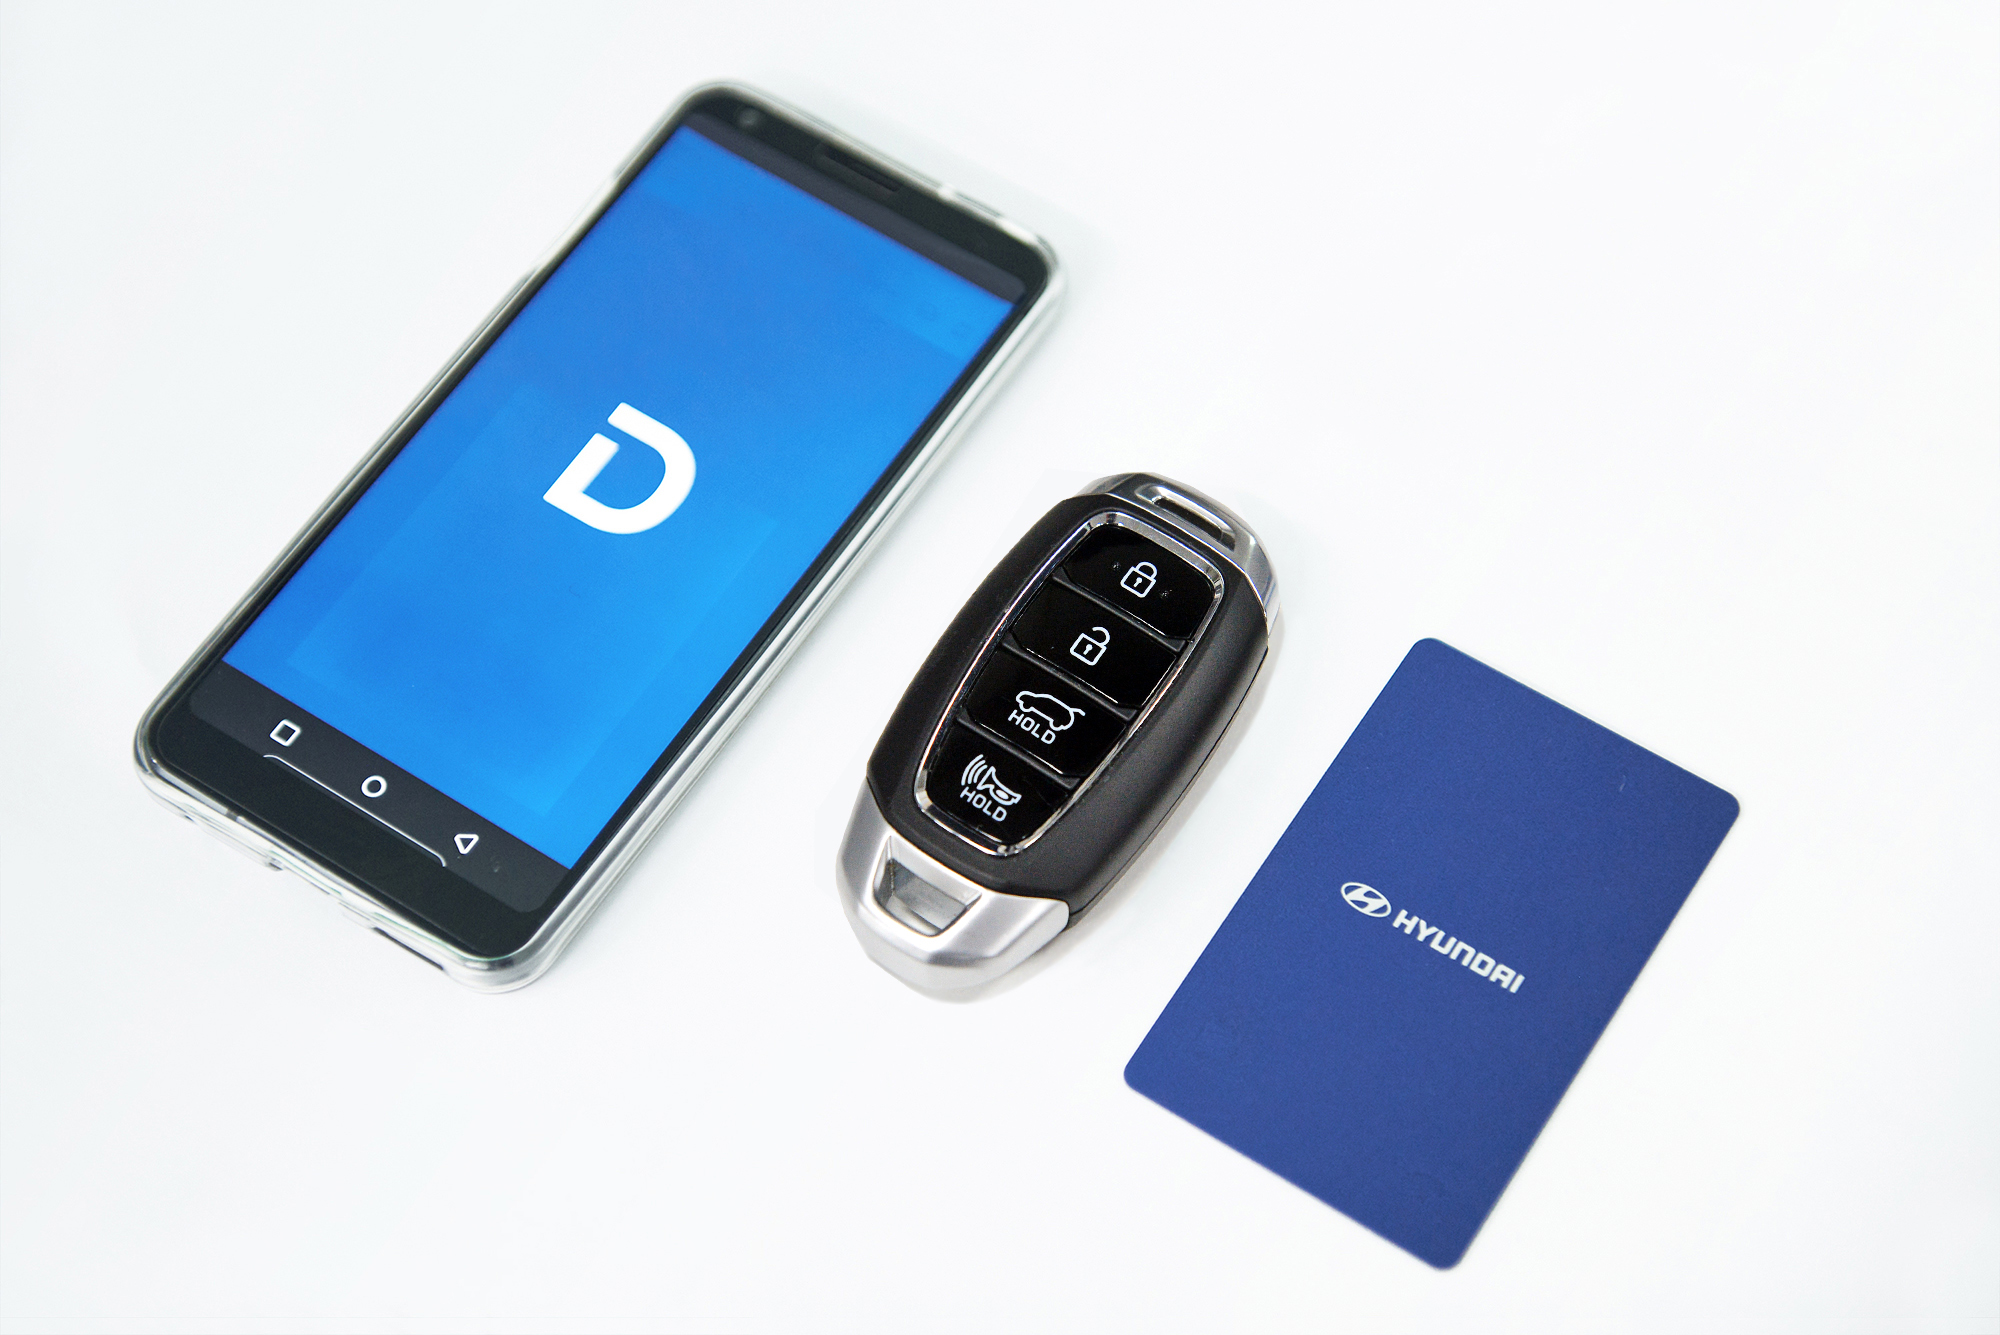 190304_Hyundai Motor group Develops Smartphone-based Digital Key_Press Photo2.jpg